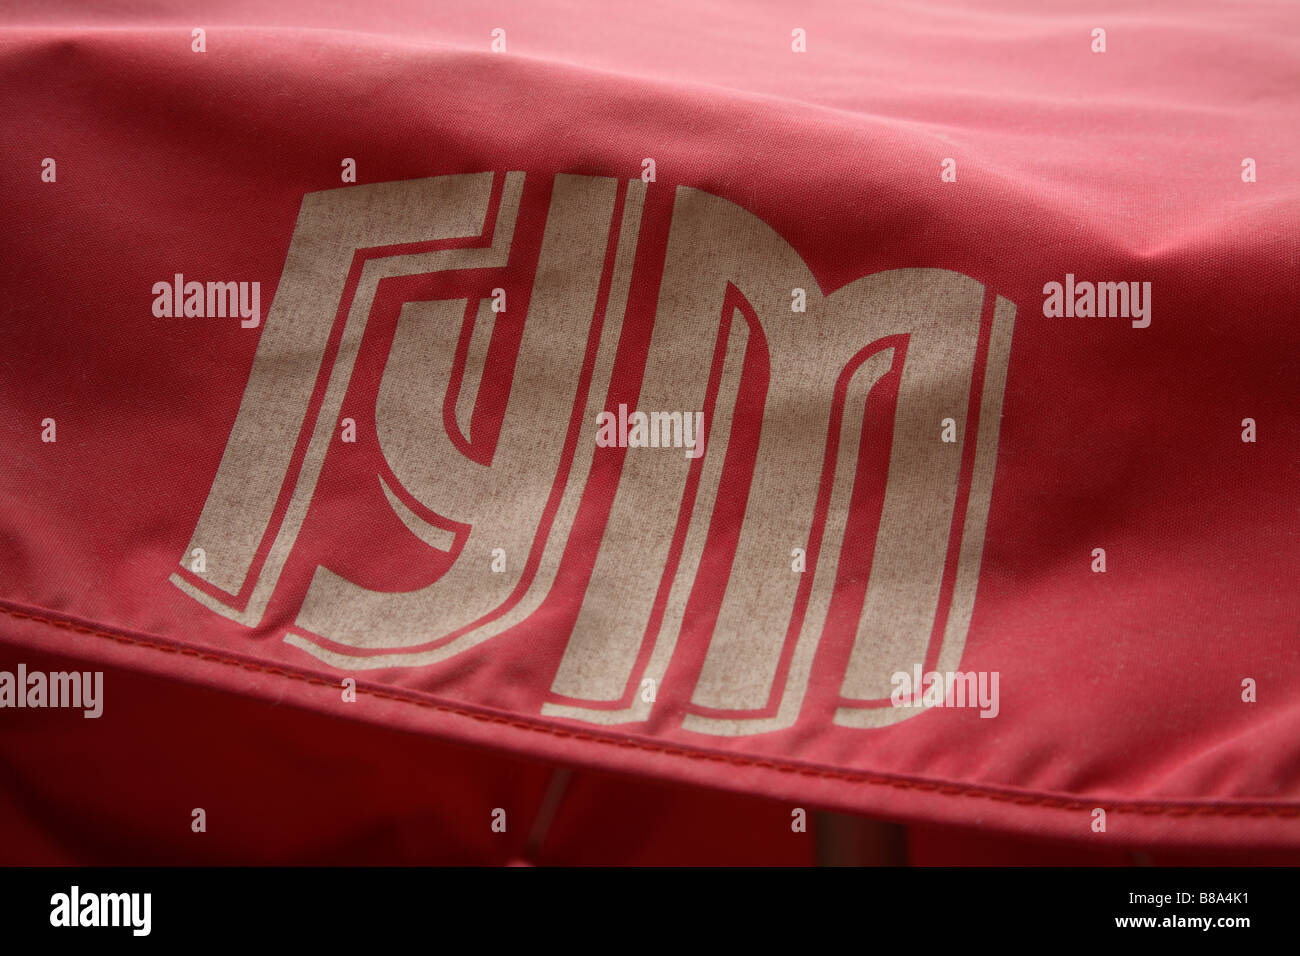 Russia,Moscow,Red Square,Gum Department Store,Sign - Stock Image